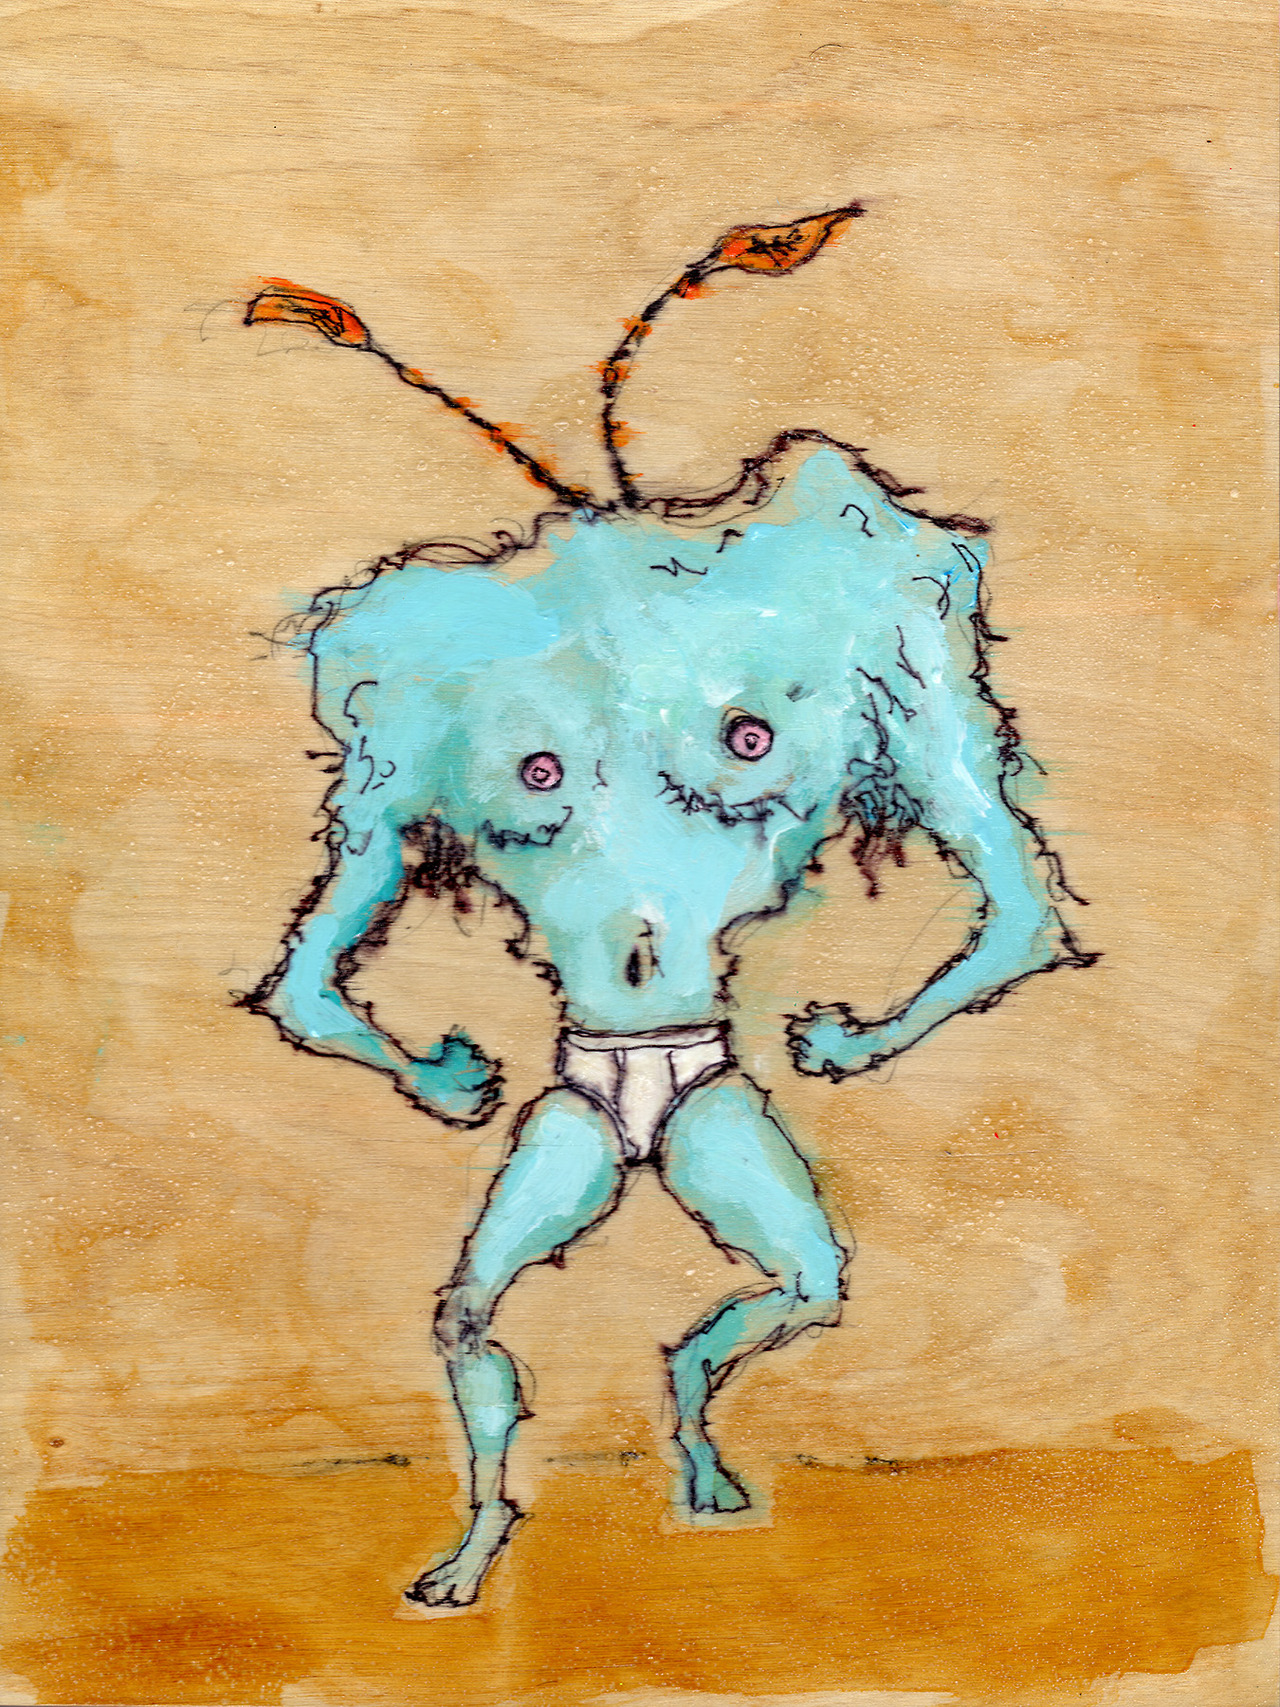 "3/7/13 -  The Grump.     I did a variation of this piece for a friend's birthday. This one is shinier. And the underwear glows a bit more.    9"" x 12""   Acrylic paint, shellac, sharpie, pencil on birch panel.    Available to purchase here:    http://taylorwinder.bigcartel.com     Prints available here:    http://society6.com/taylorwinder"